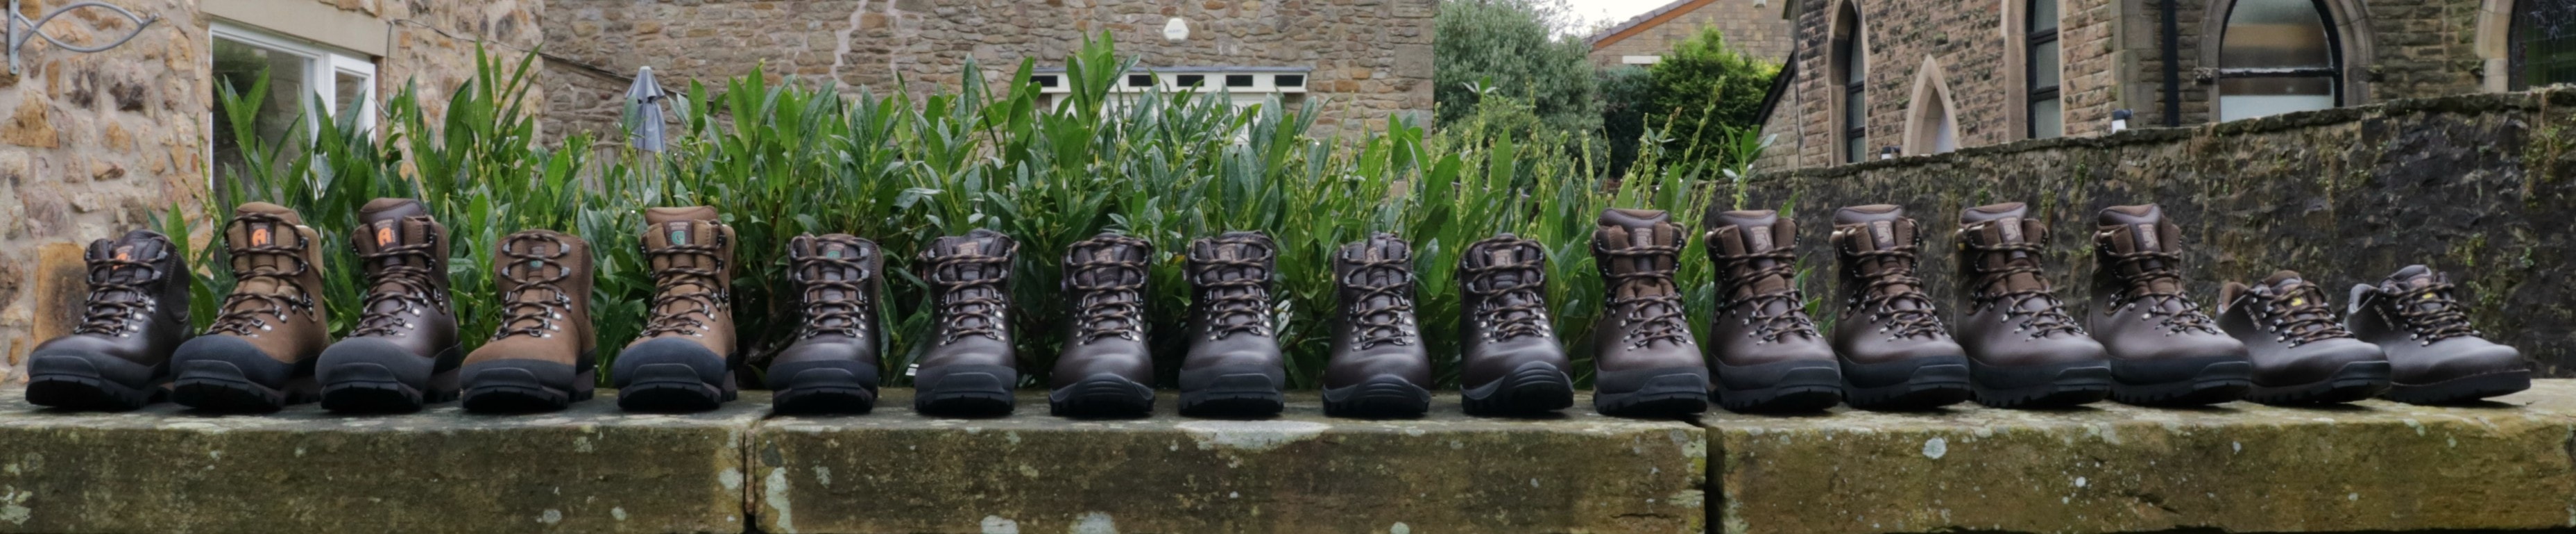 Altberg boots and shoes